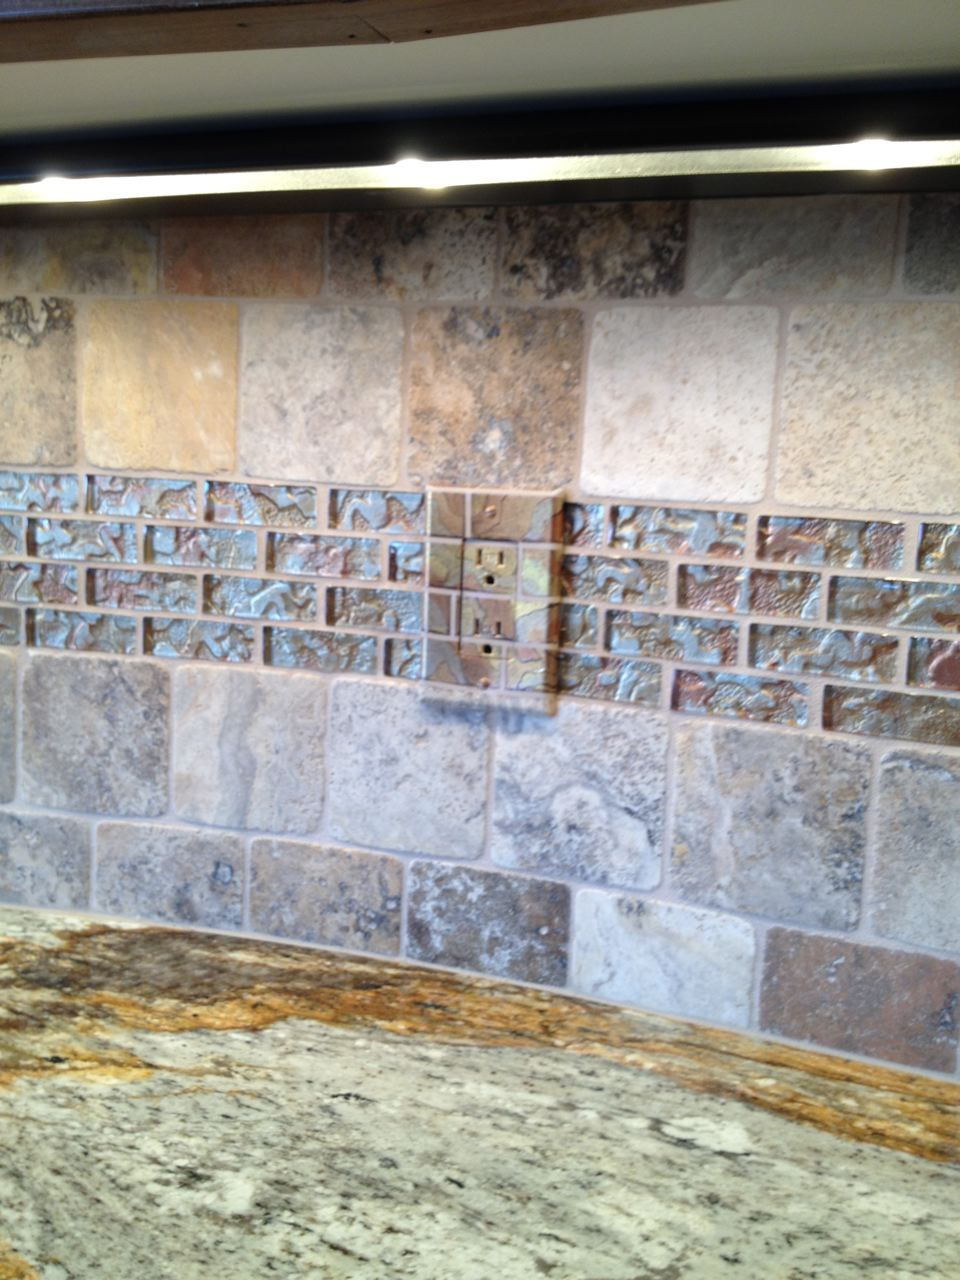 The granite gurus golden ray granite kitchen from mgs by design painted outlet to match the glass tile backsplash not sure im artistic enough to do this but interesting idea dailygadgetfo Image collections